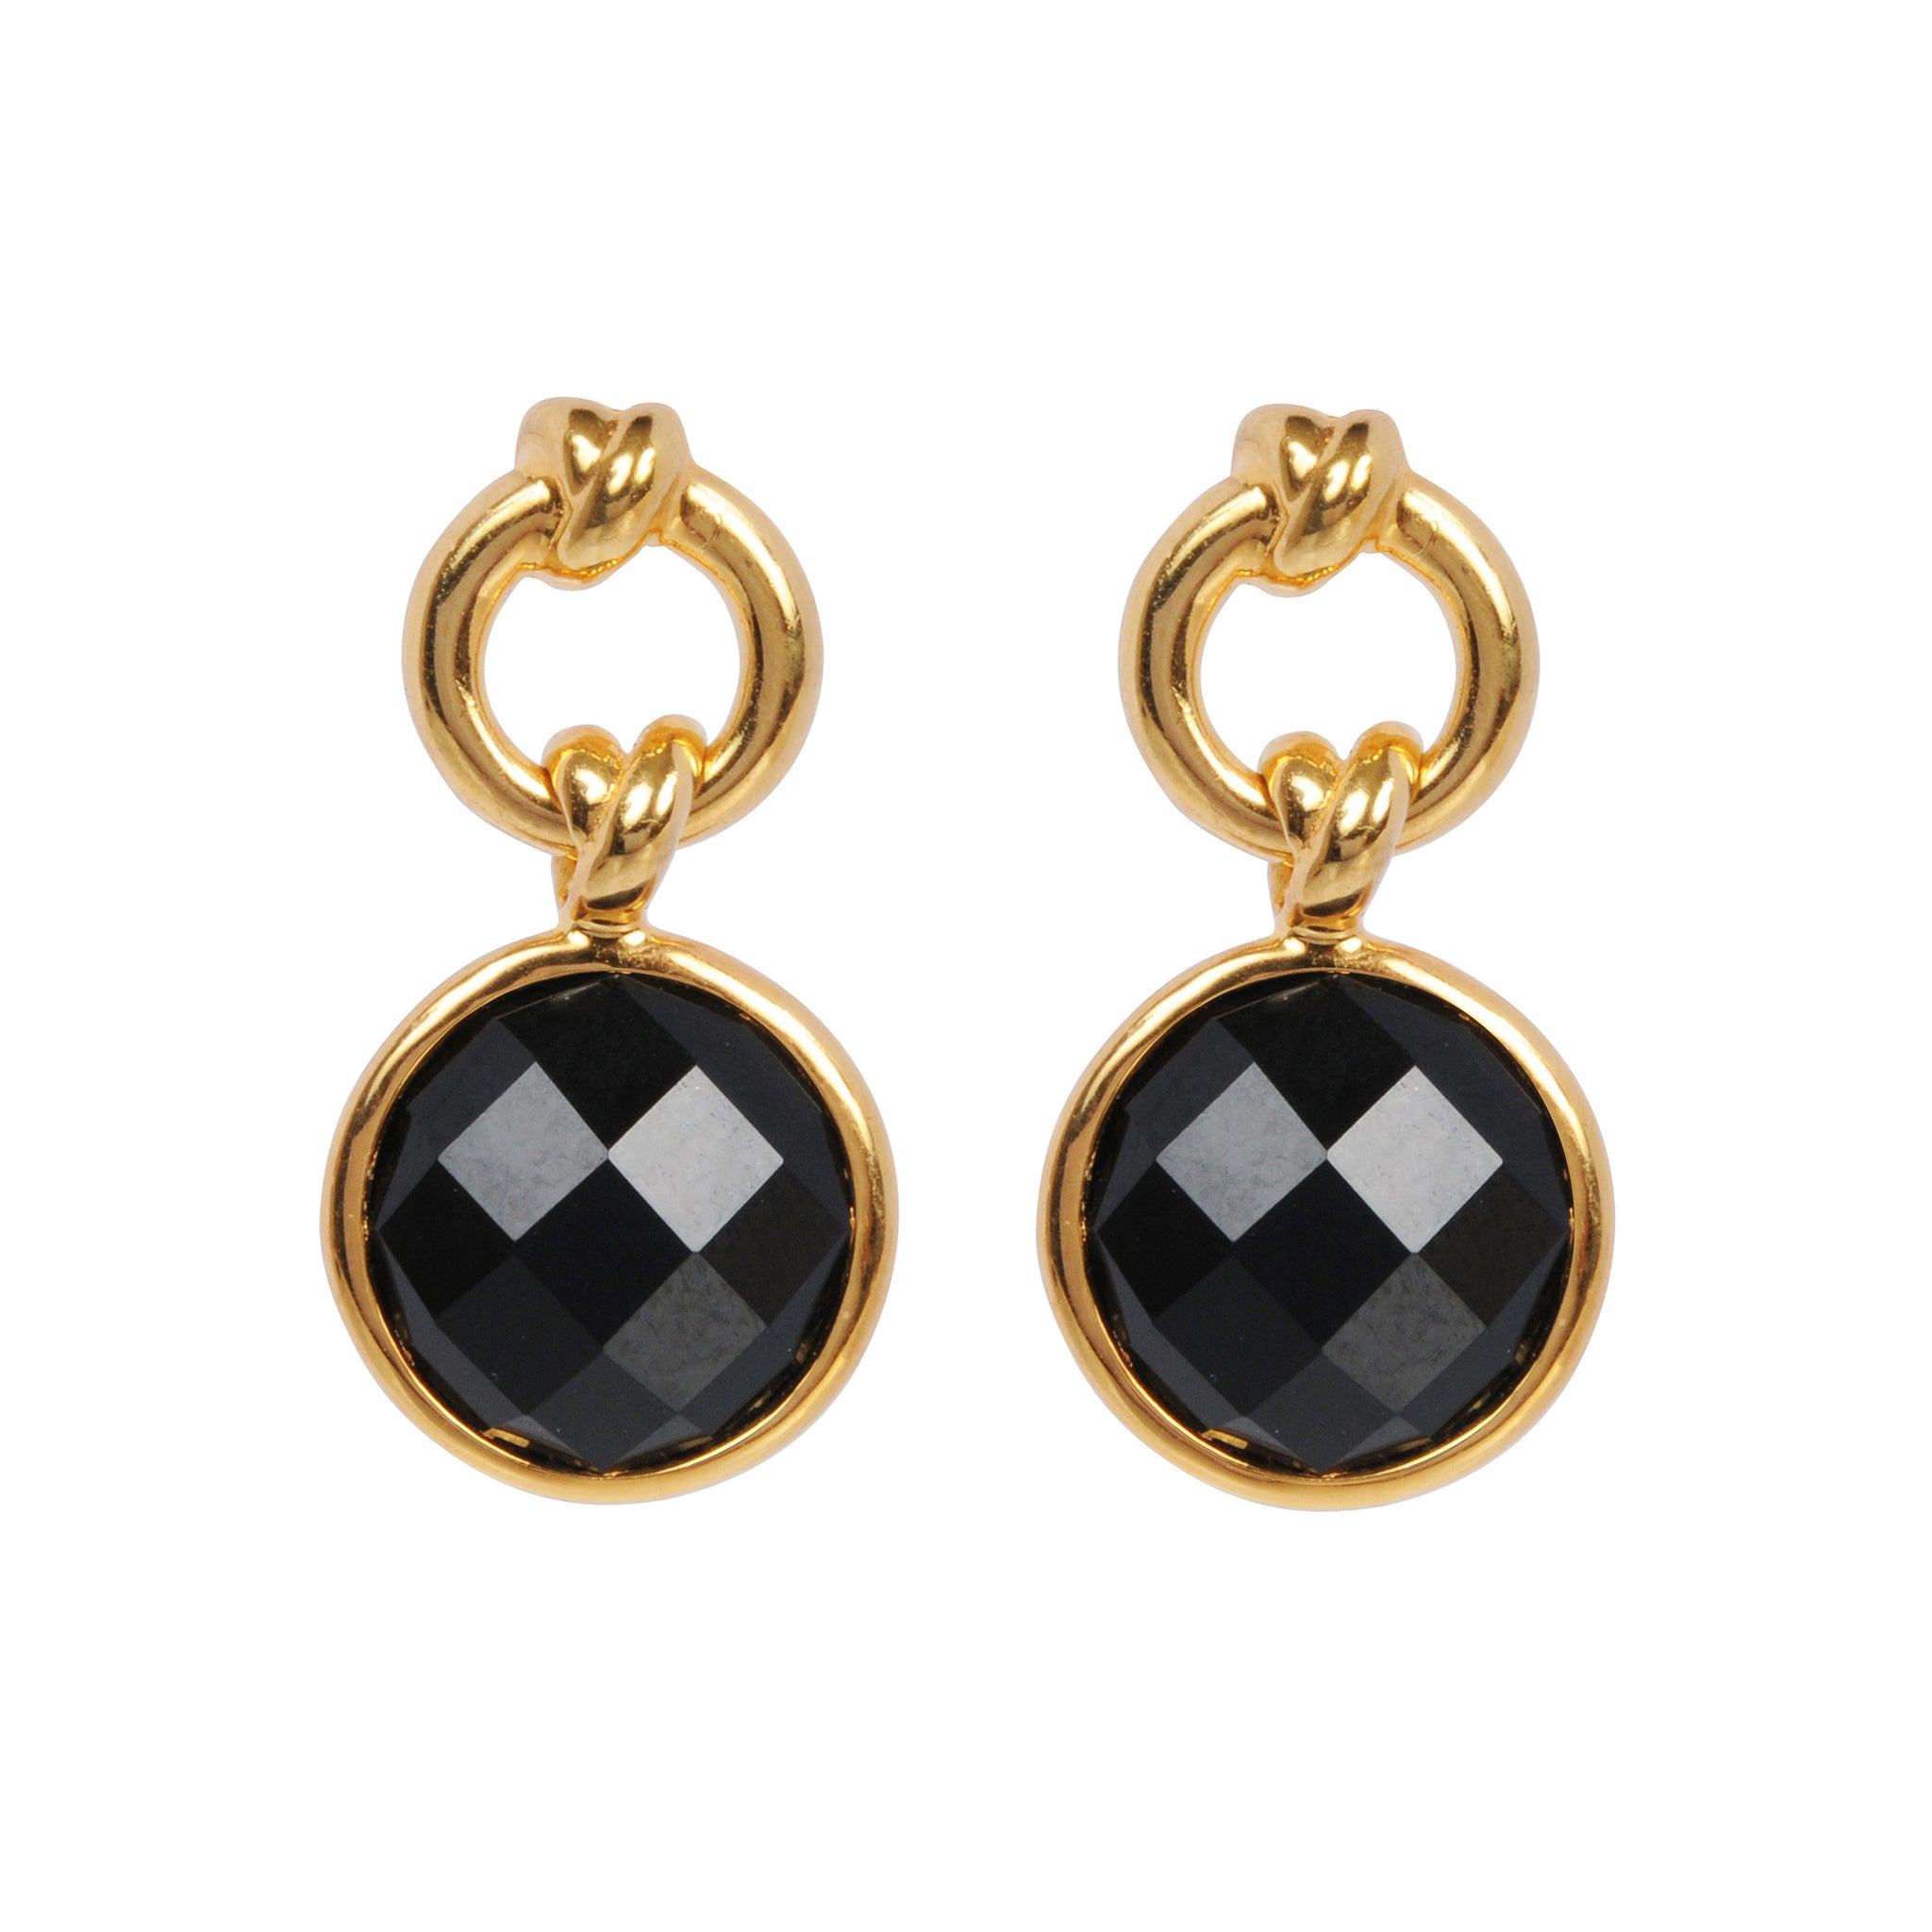 DAVINA COMBE - KNOT DROP EARRINGS WITH BLACK ONYX